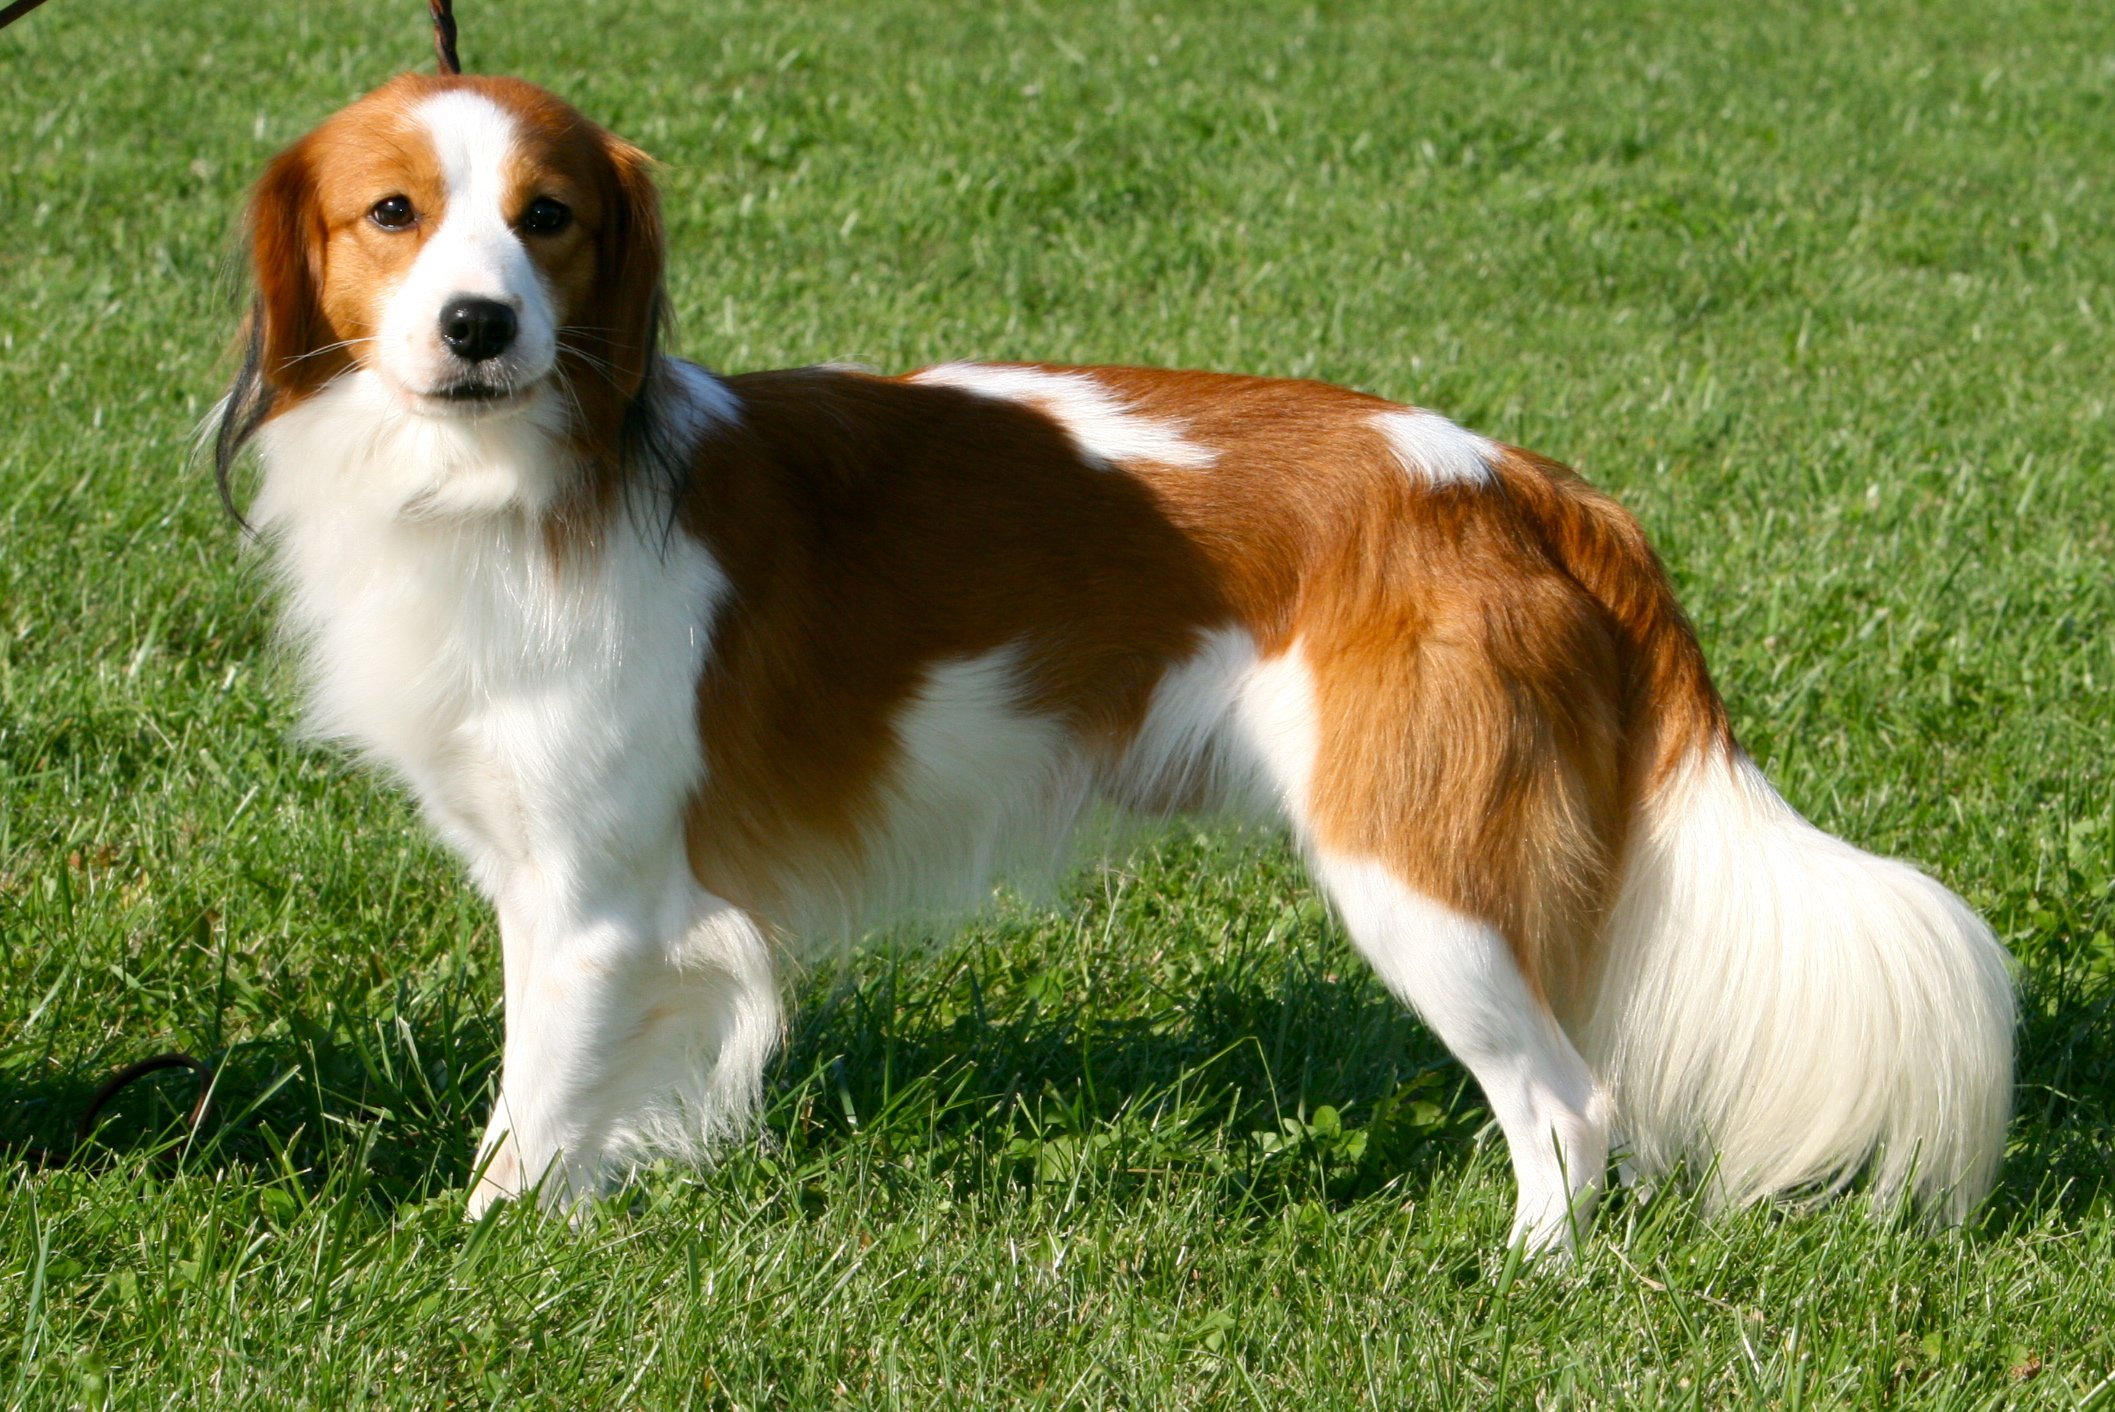 The Kooikerhondje dog is original from Hungary and was developed to help hunting ducks. He is still a hunting dog but also excels at sports like flyball.